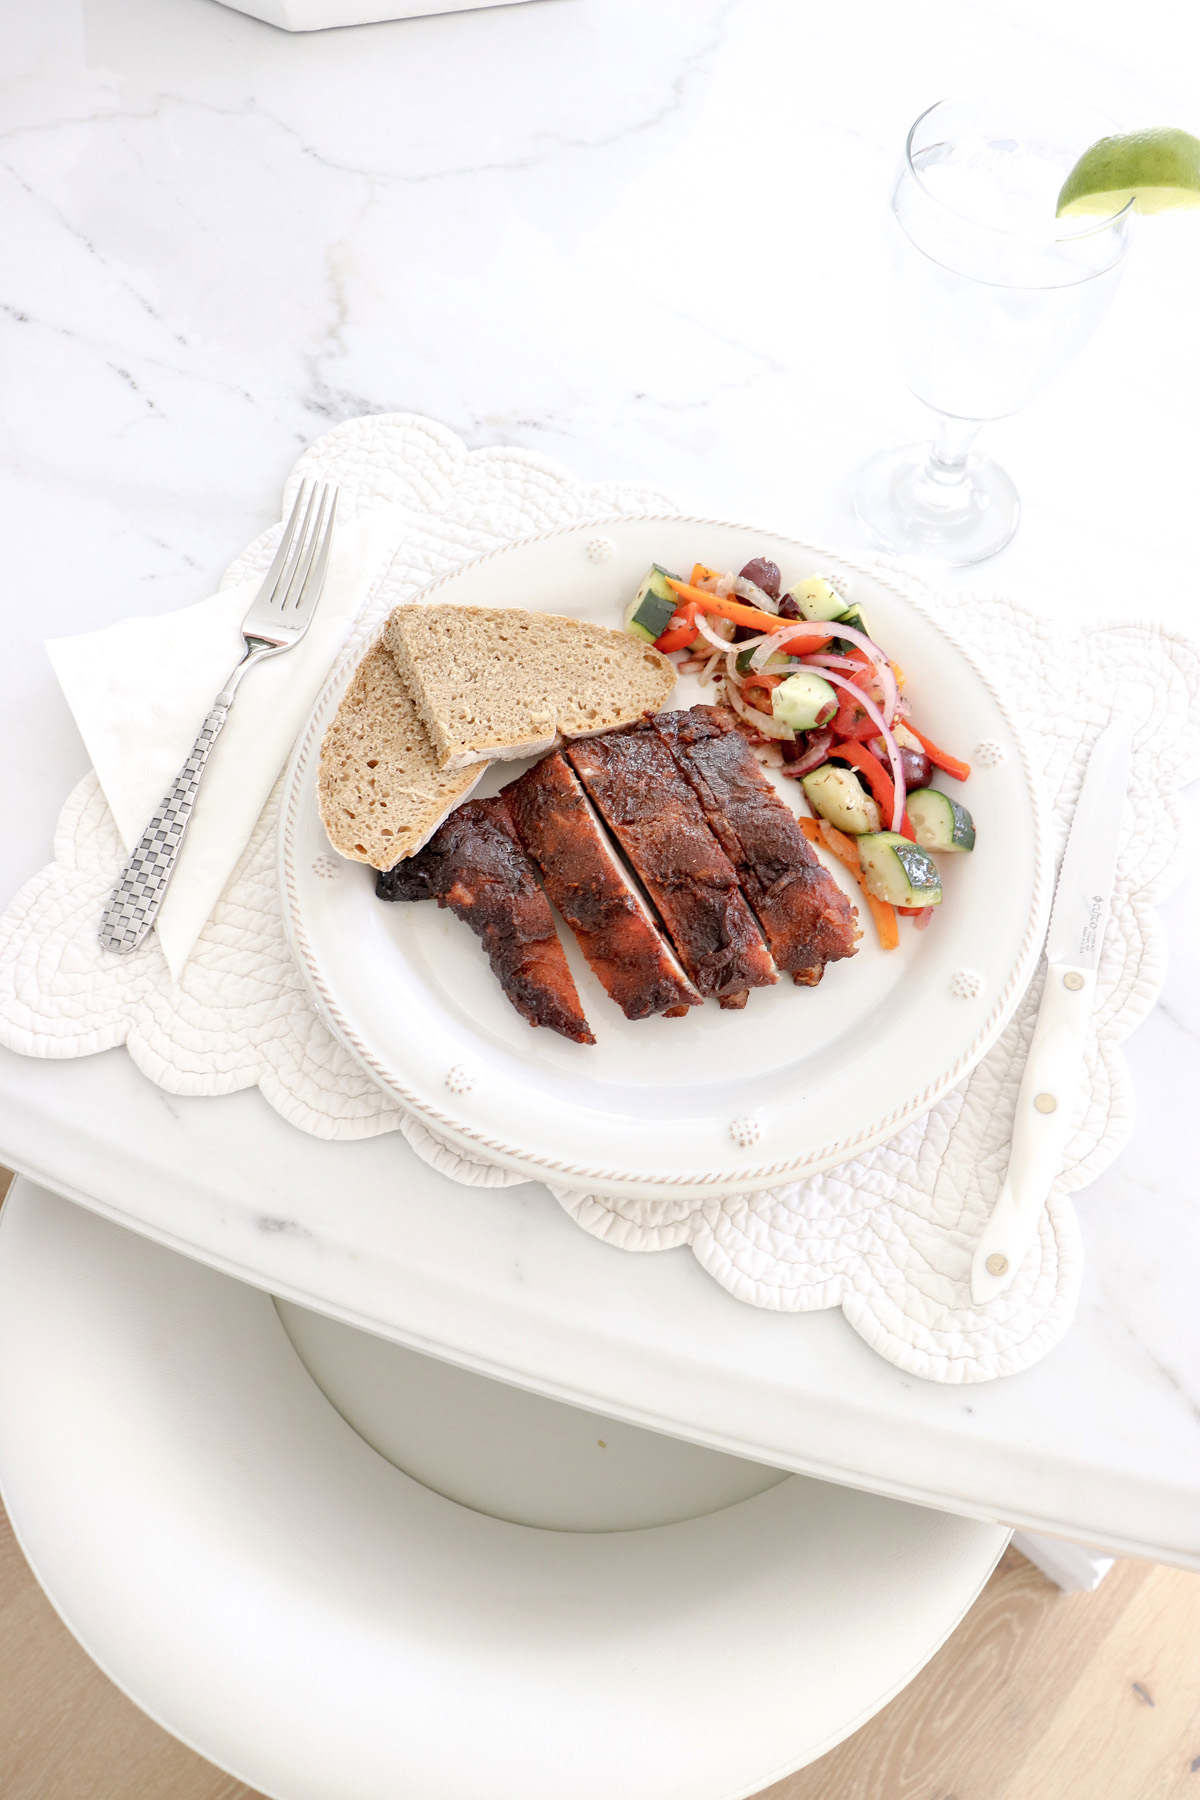 The Best Smoked Ribs & Rib Rub Recipe - Be the most popular person at the summer BBQ and make these delicious ribs! | Kristy Wicks